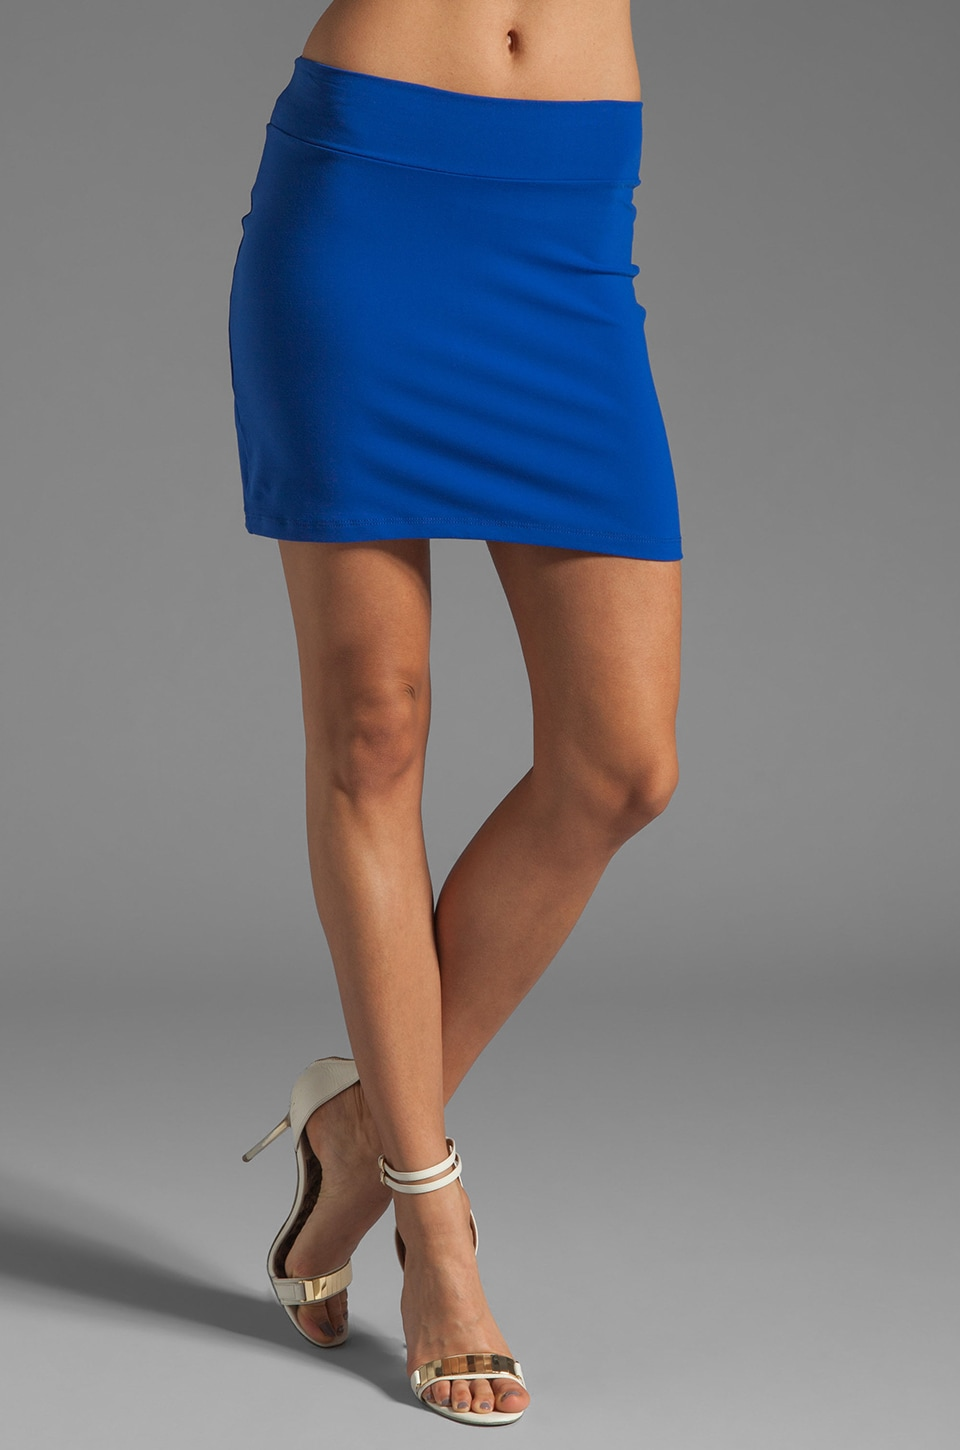 Susana Monaco Slim Skirt in Lapis